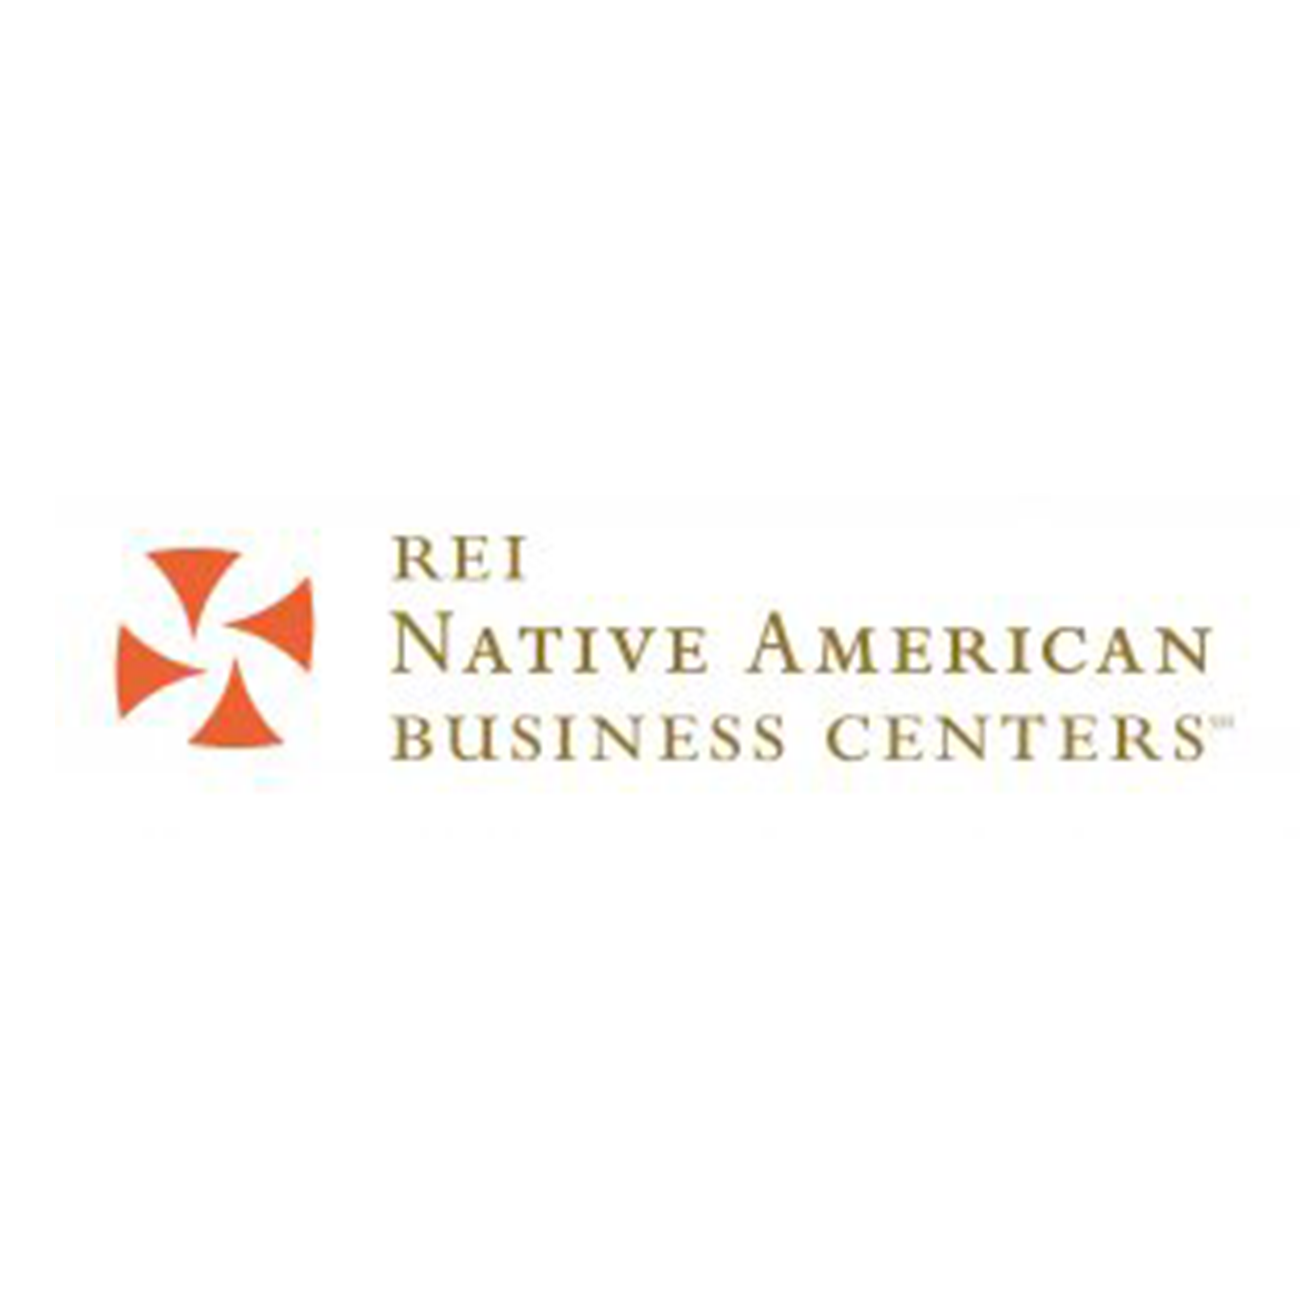 REI Native American Business Centers